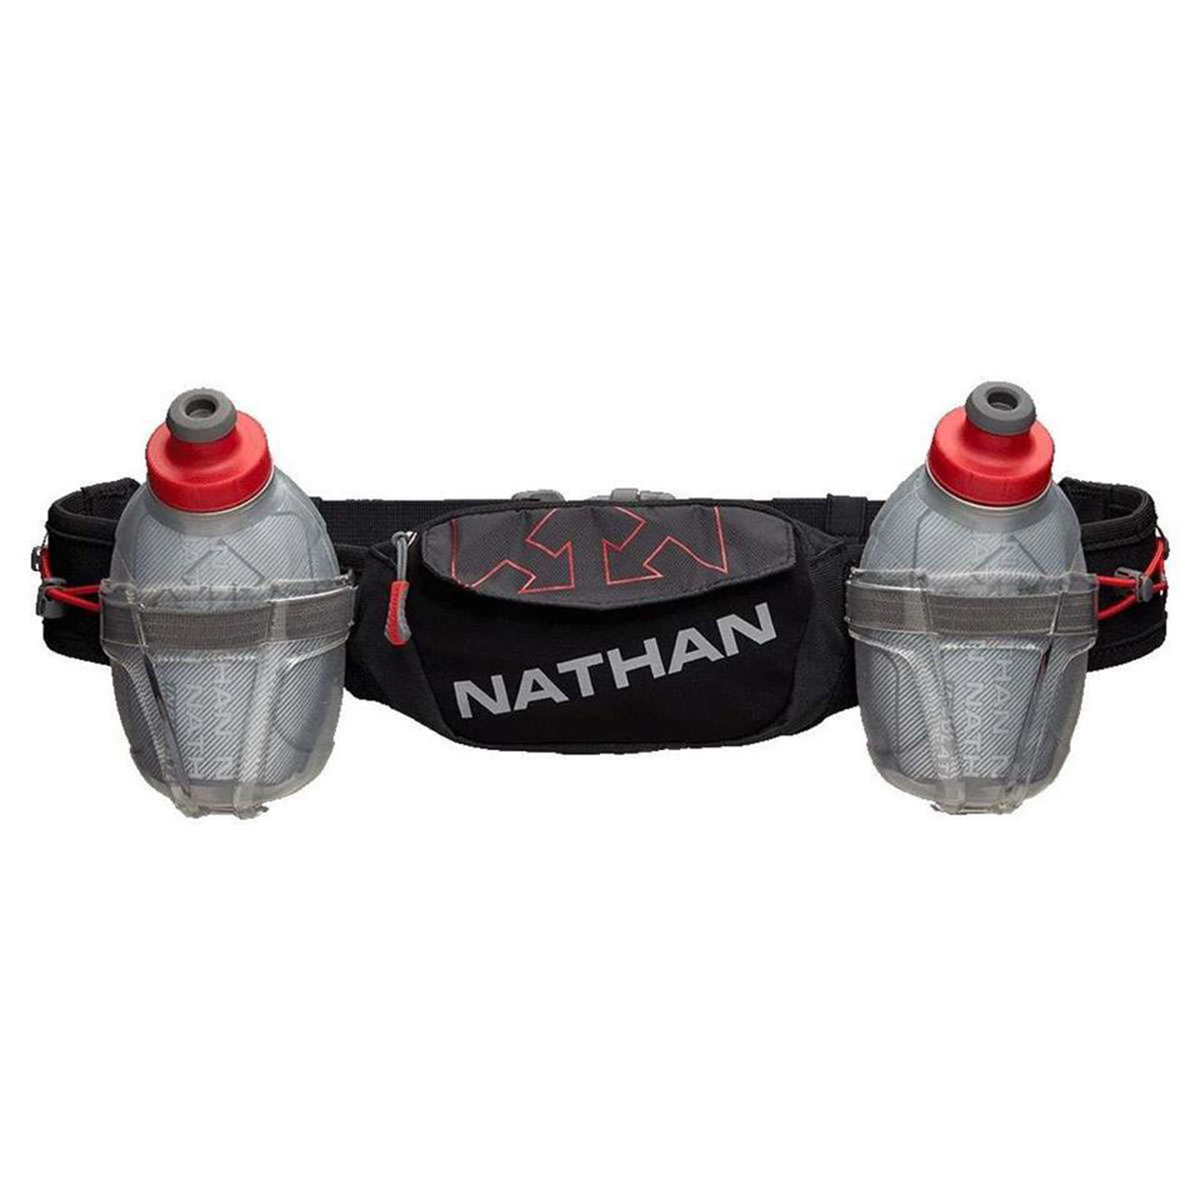 Nathan Trailmix Plus Insulated Hydration Belt - Color: Black/High Risk Red - Size: One Size, Black/High Risk Red, large, image 1